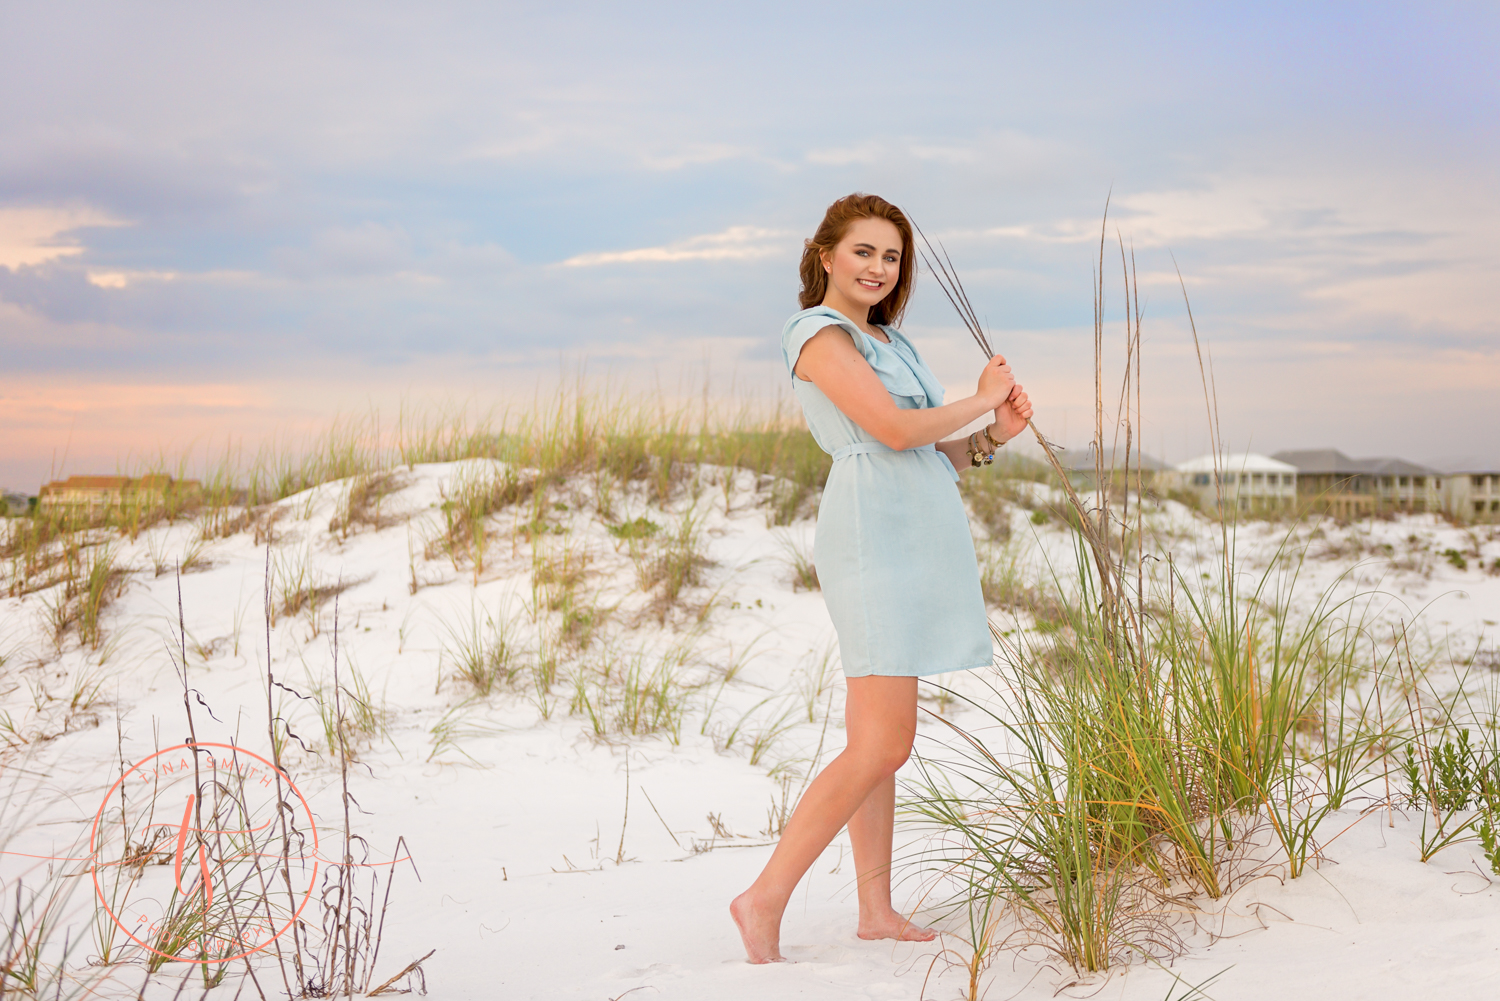 girl standing in a dress on the beach by sea oats for senior portraits in destin